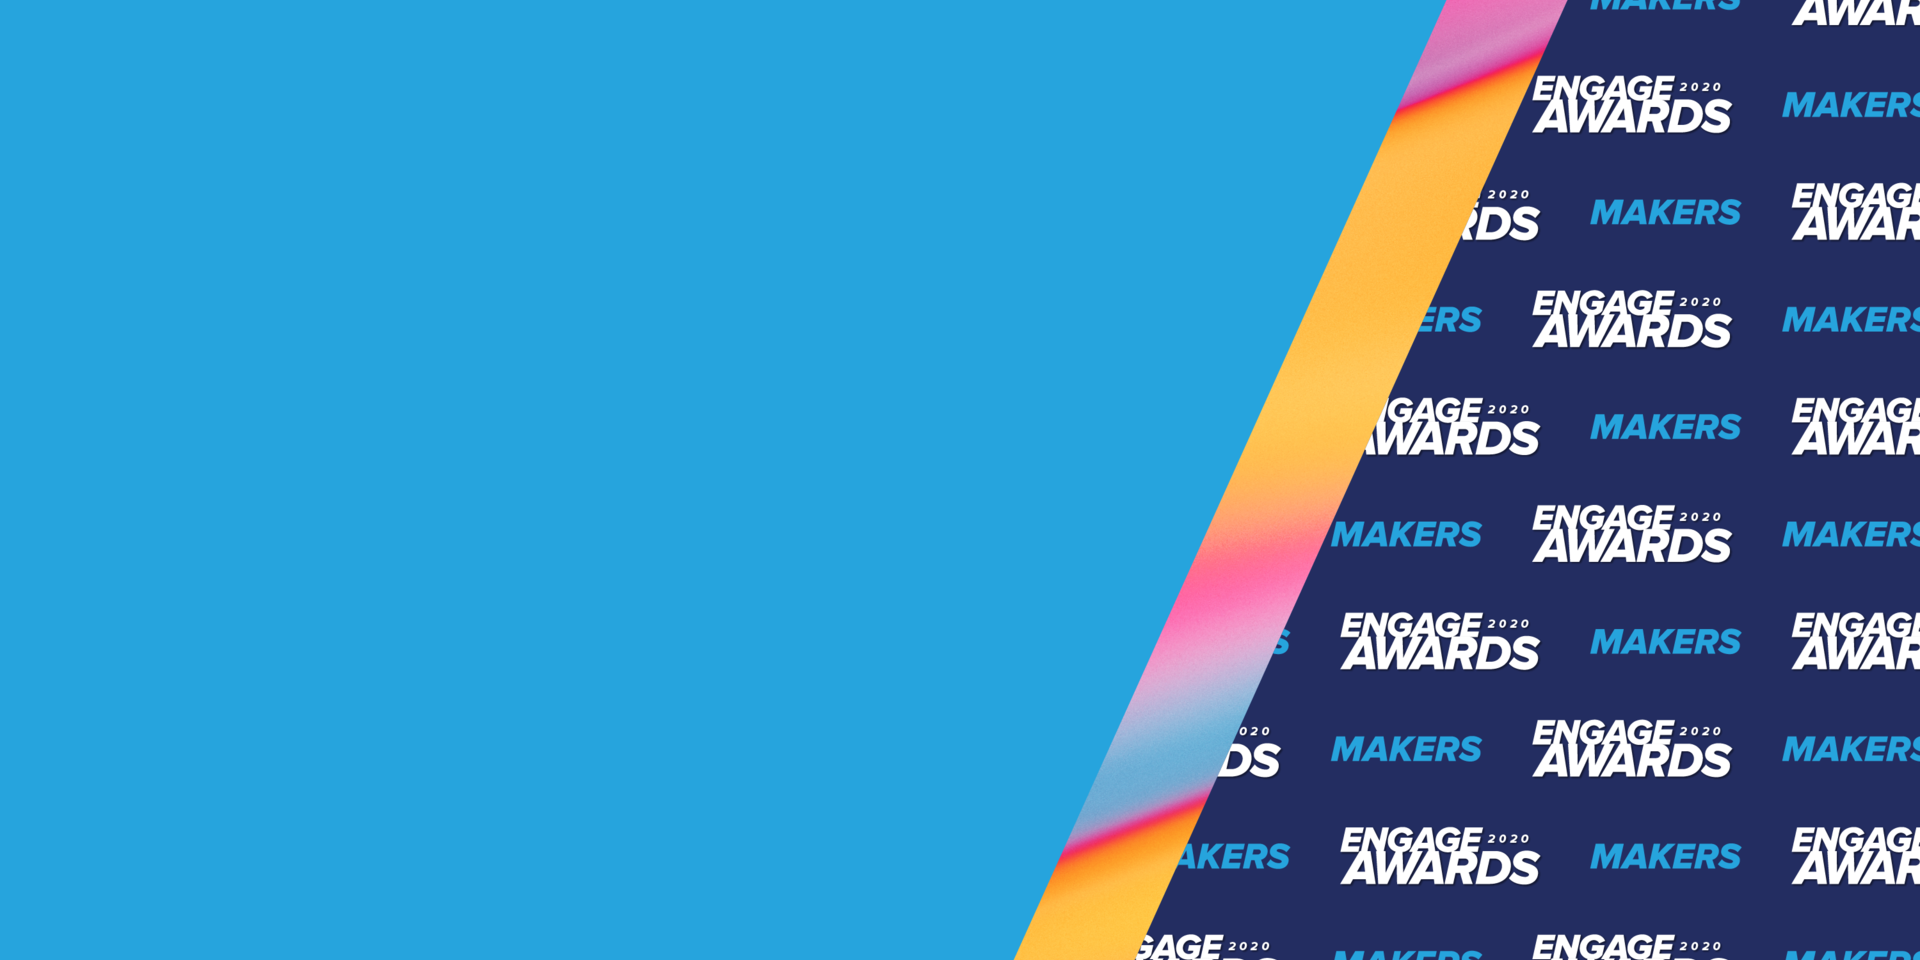 Acquia Engage Awards 2020 Makers Banner